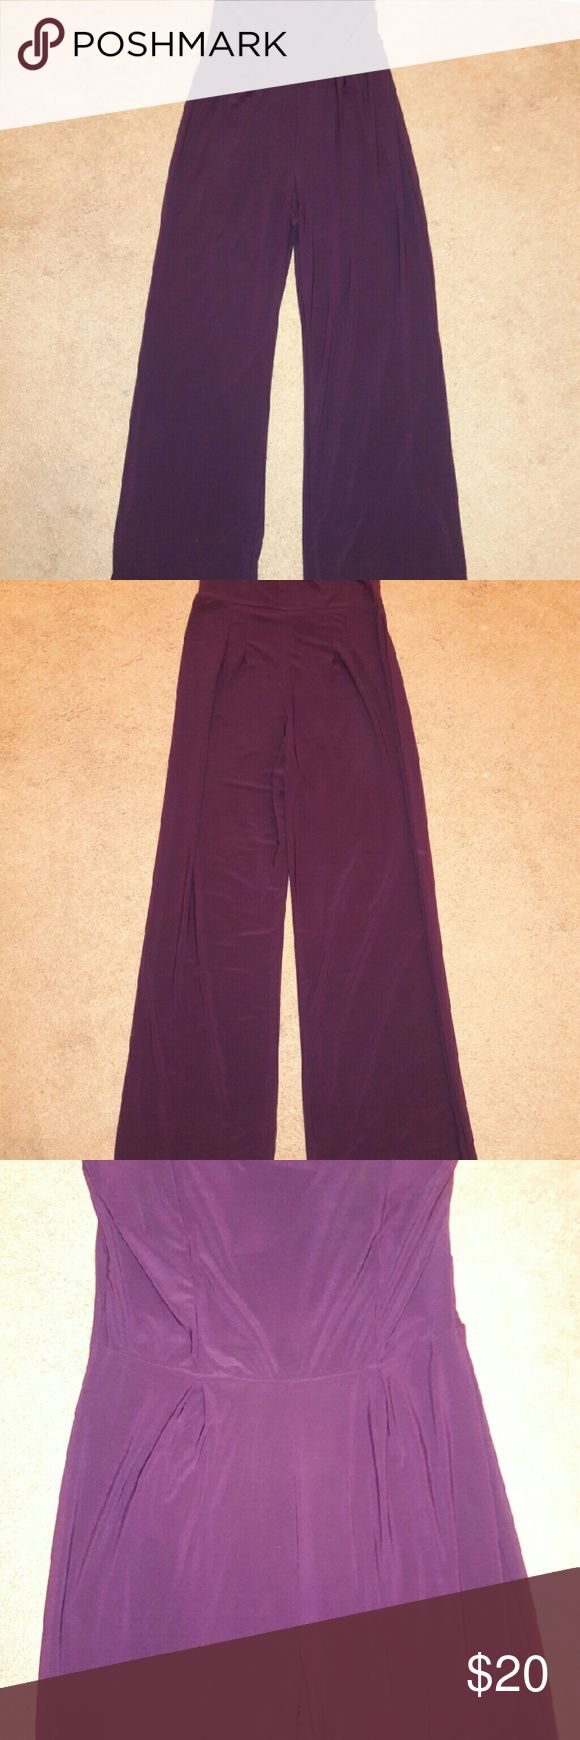 New Purple Jumpsuits Beautiful Purple Jumpsuits, 95% Polyester 5% Spandex Charlotte Russe Pants Jumpsuits & Rompers